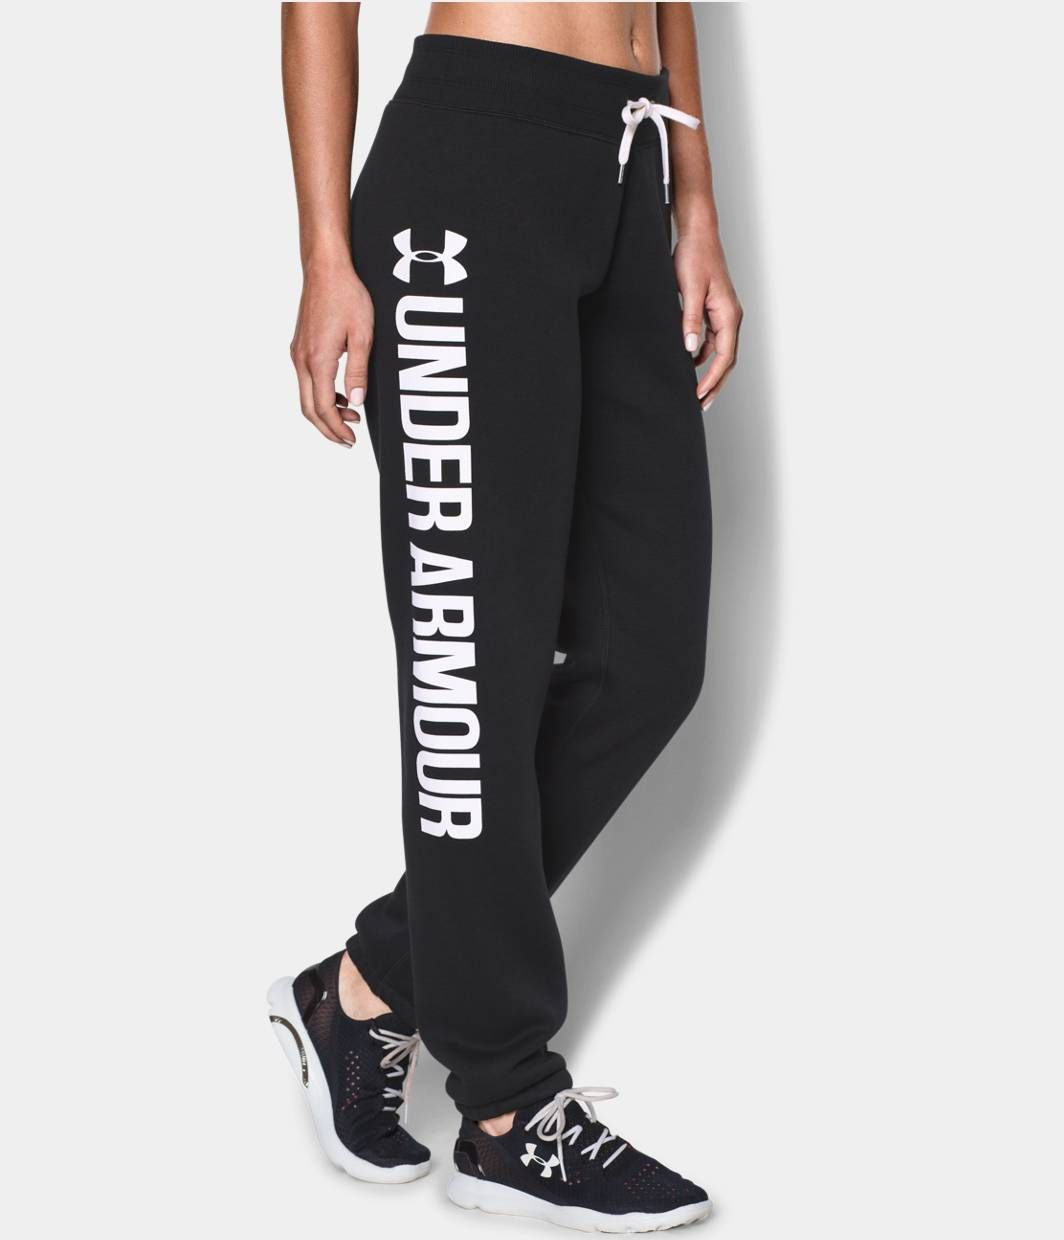 56a959efd9c Under Armour s Favorite Fleece Boyfriend Pant has a lightweight stretch  constriction and ultra-soft interior. Built for whatever the day brings.